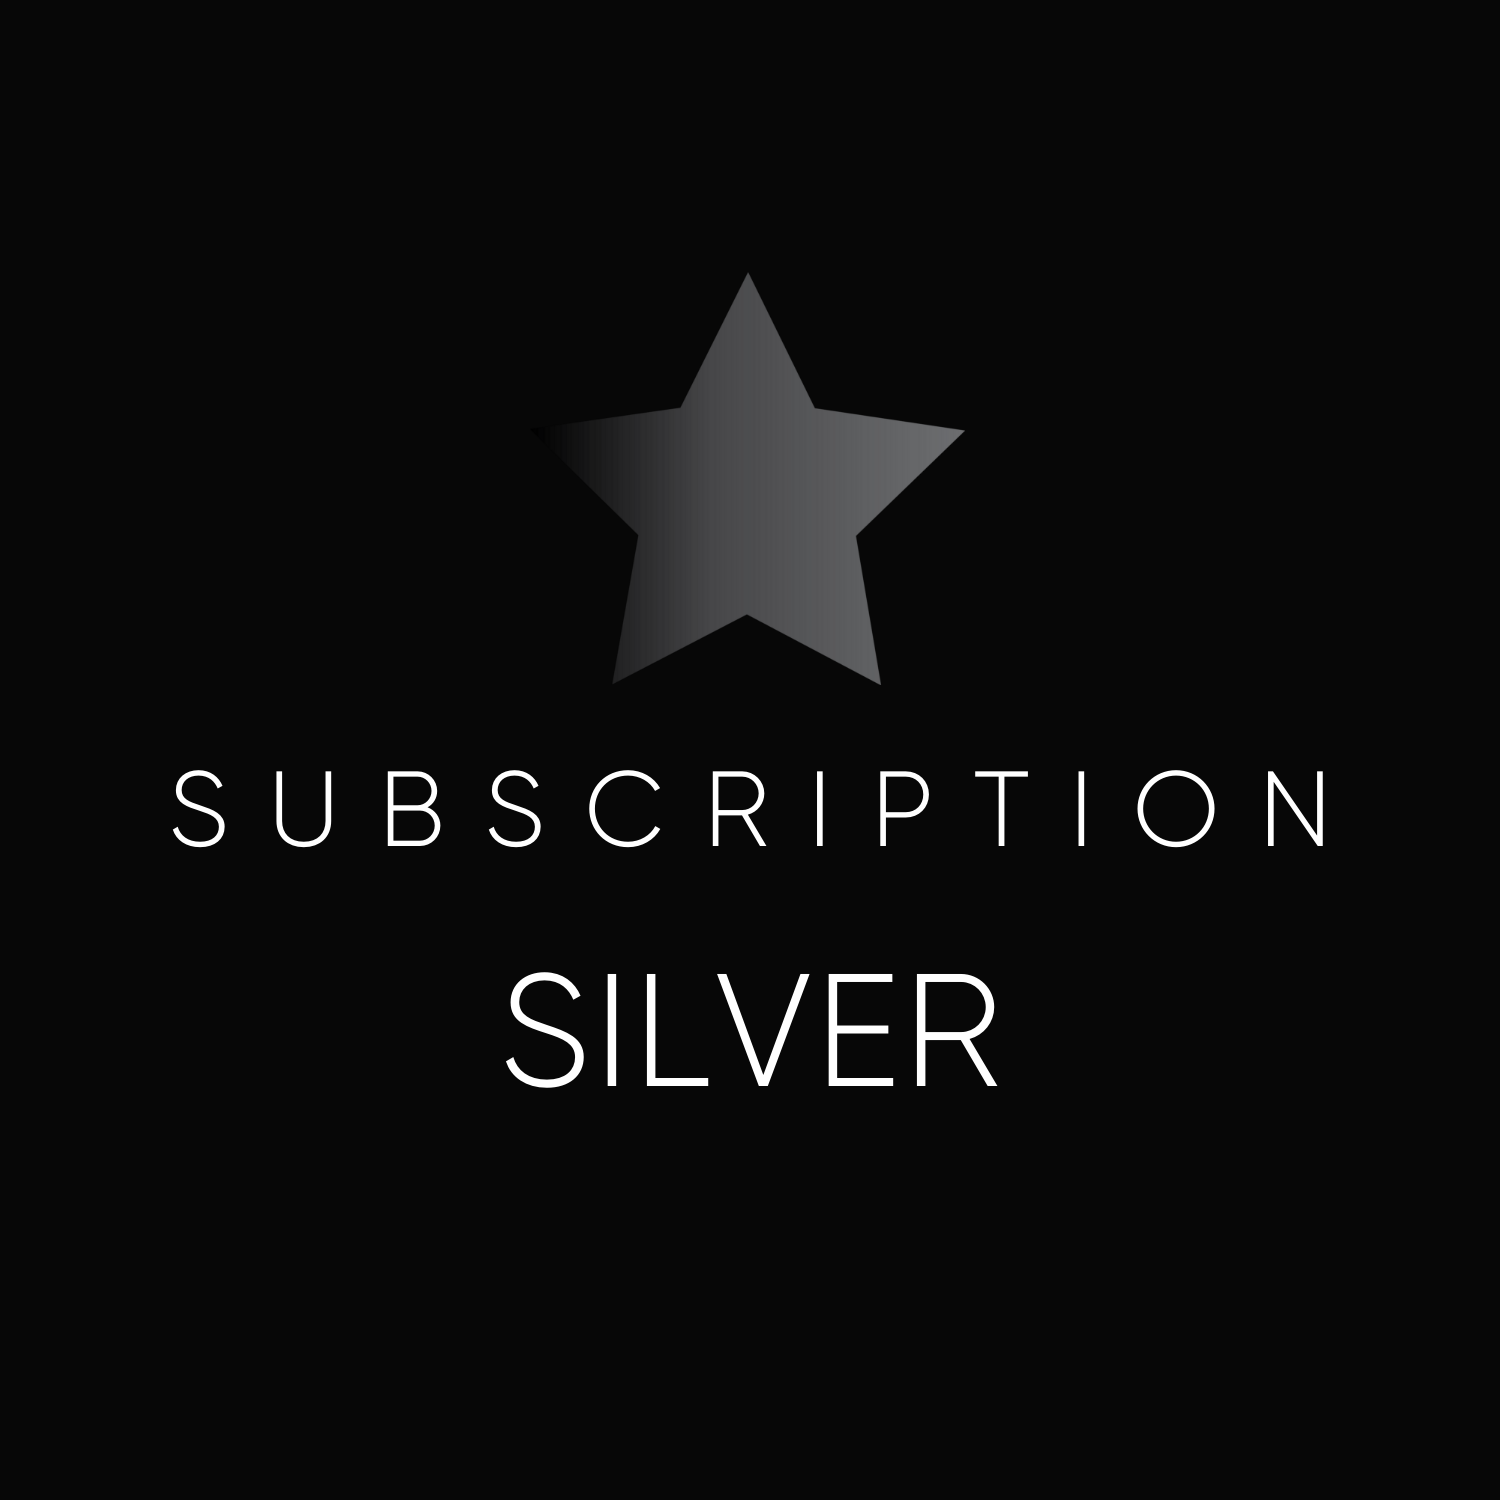 - For $29.95 per month, here is what Silver Subscription entitles you to:Daily intuitive horoscopesAccess to our private facebook members groupMember's only perks and discountsMonthly star sign coaching audioLive monthly star sign group coaching sessionAdditional Star Sign audios